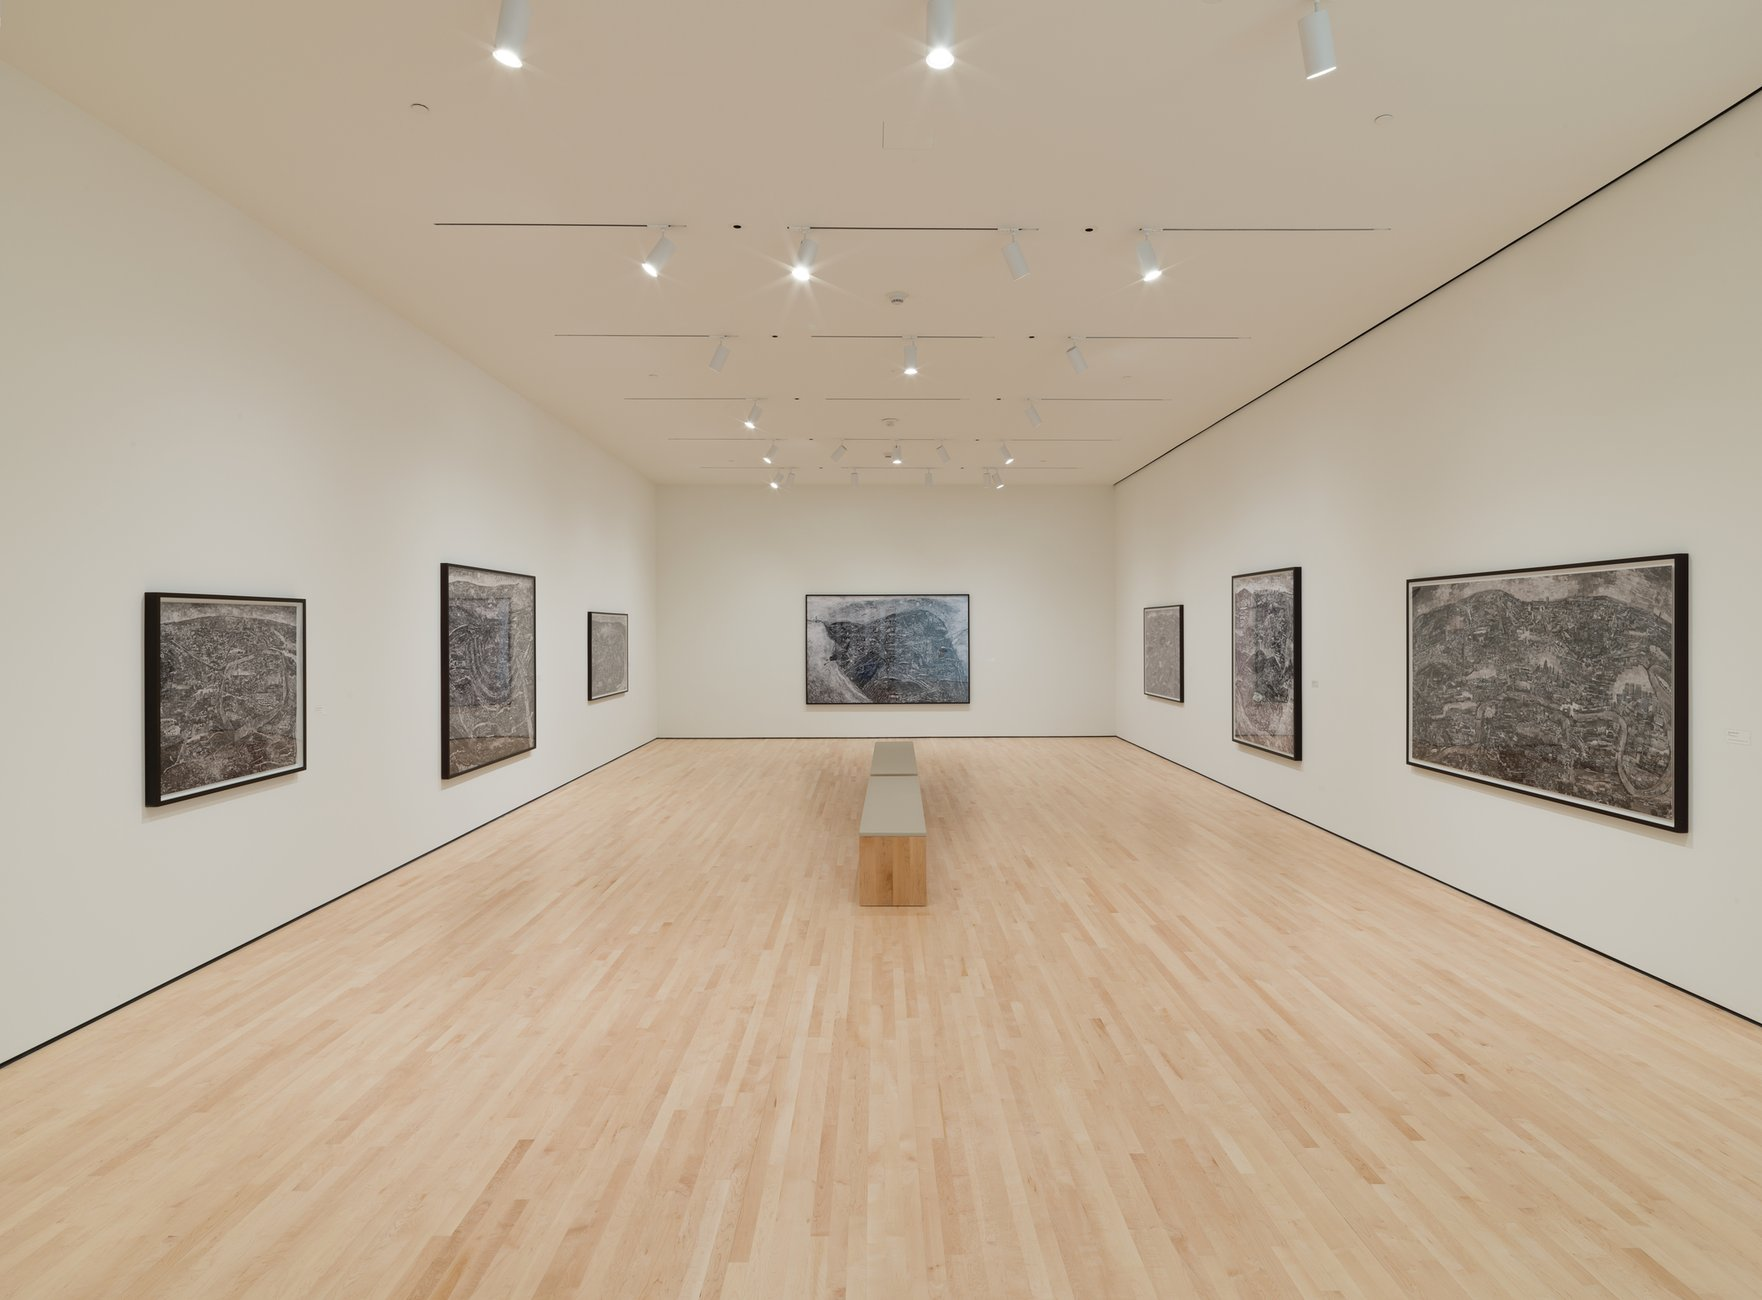 Installation view, New Work: Sohei Nishino